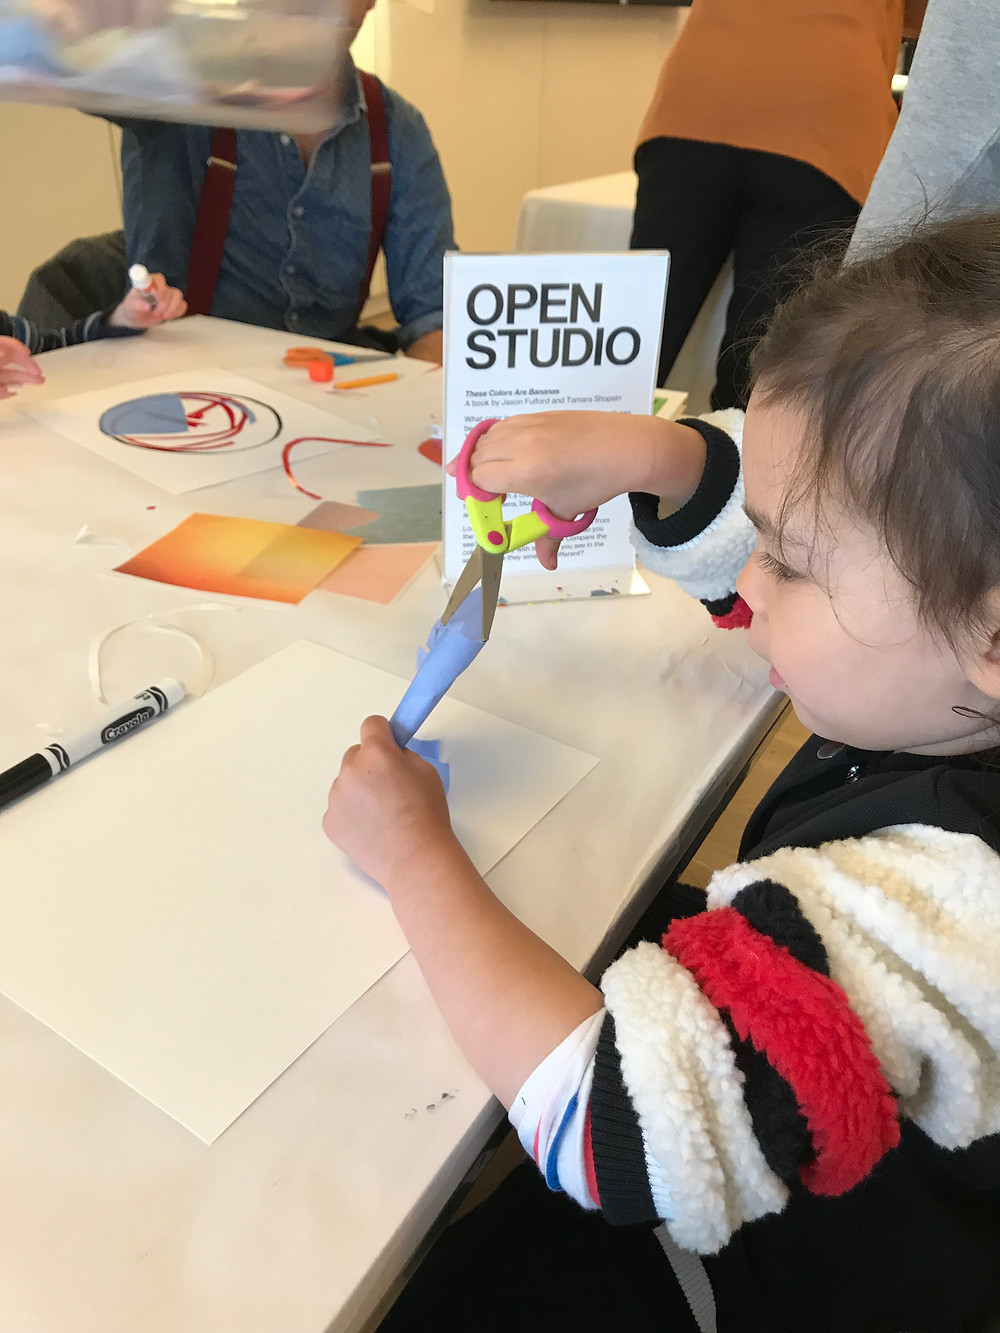 Open Studio at the Whitney, Open Studio, Whitney Museum, Tamara Shopshin, These Colors are Bananas, Curious G and Me